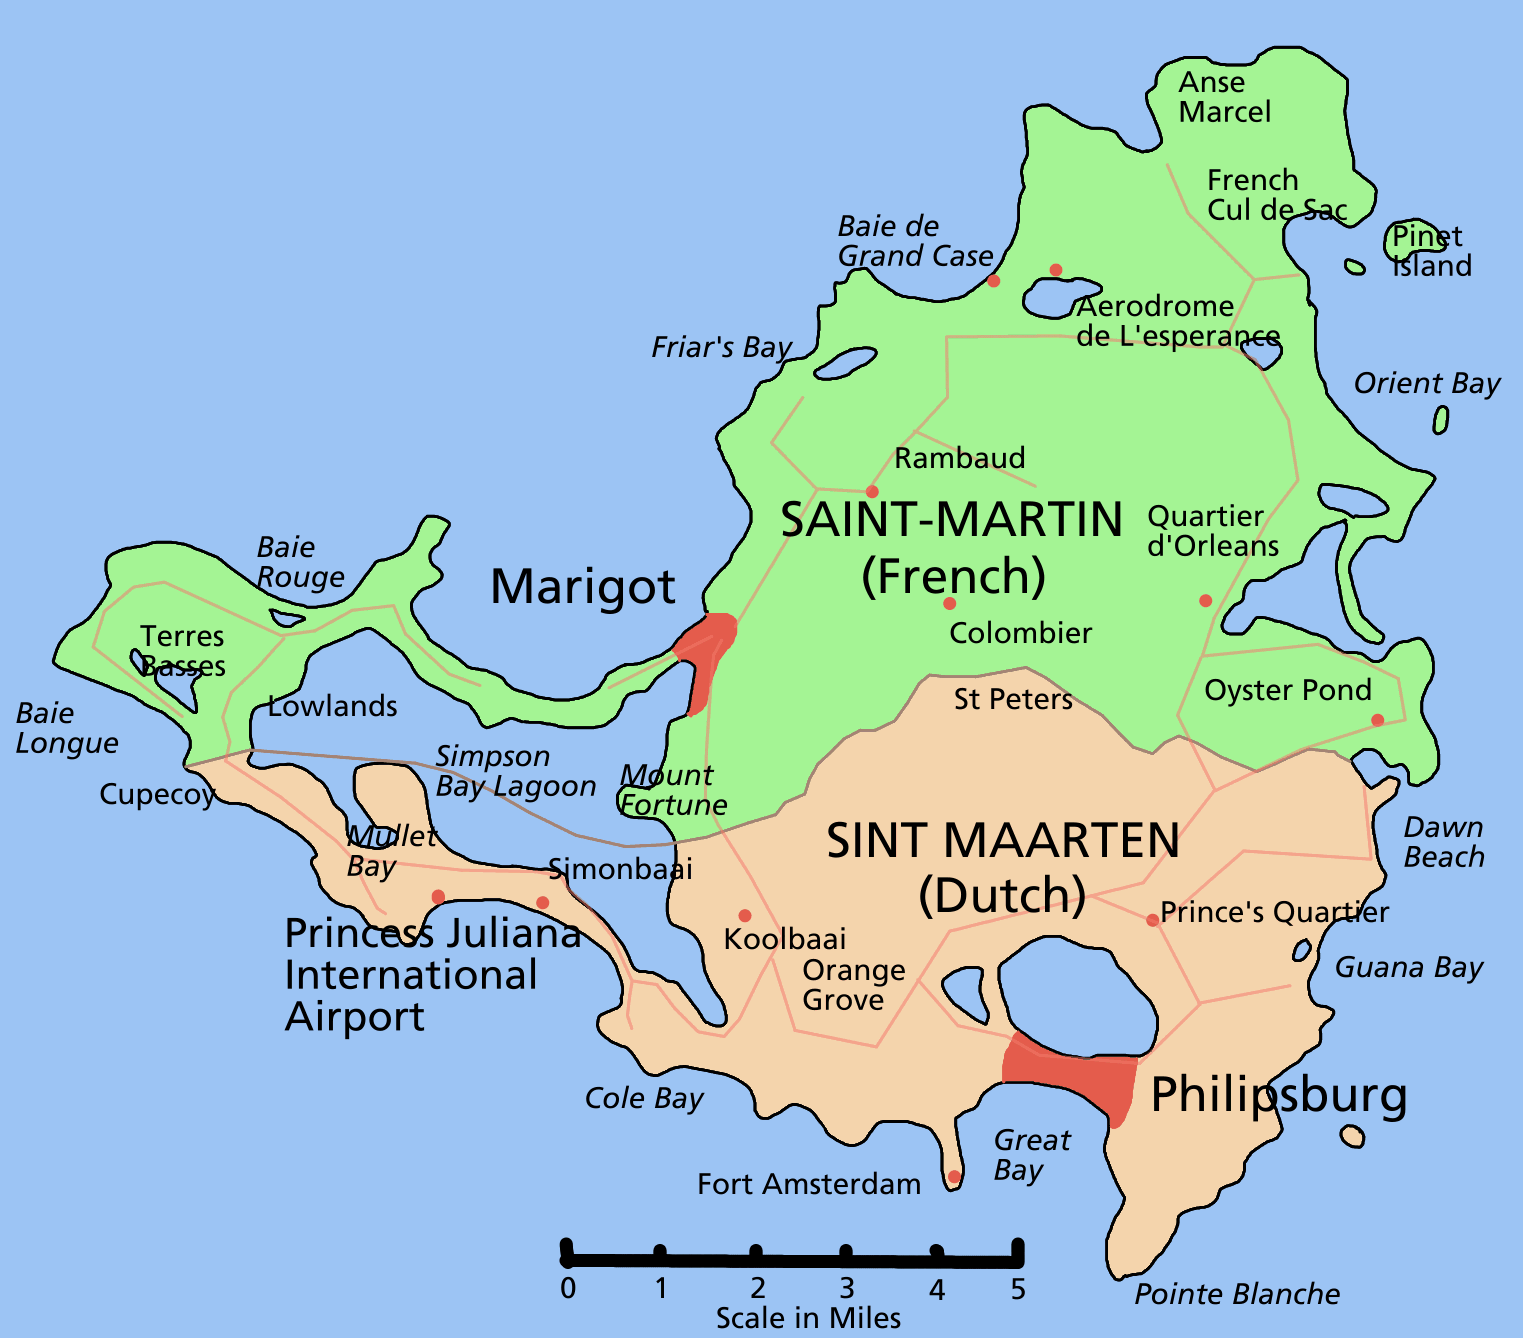 st martin france map The French Republic S Border With The Kingdom Of The Netherlands